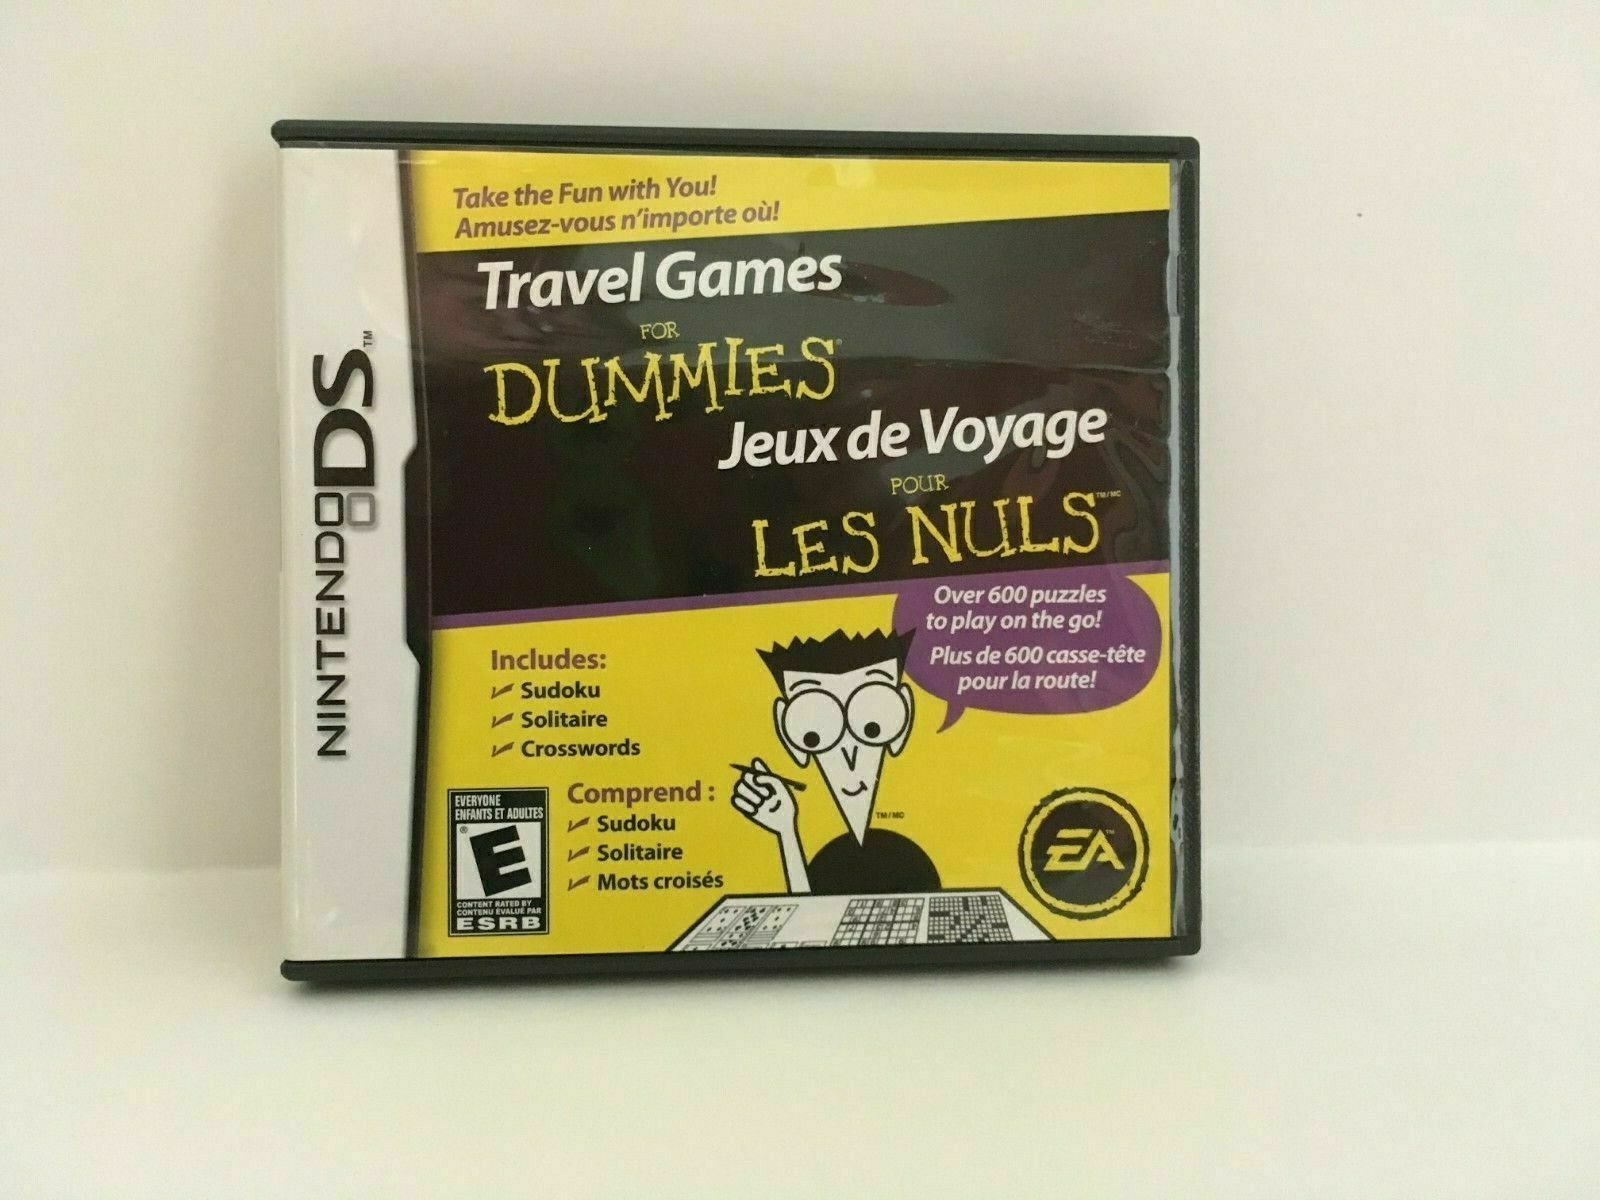 Travel Games For Dummies (Nintendo DS, 2008) CIB, USA SELLER image 2